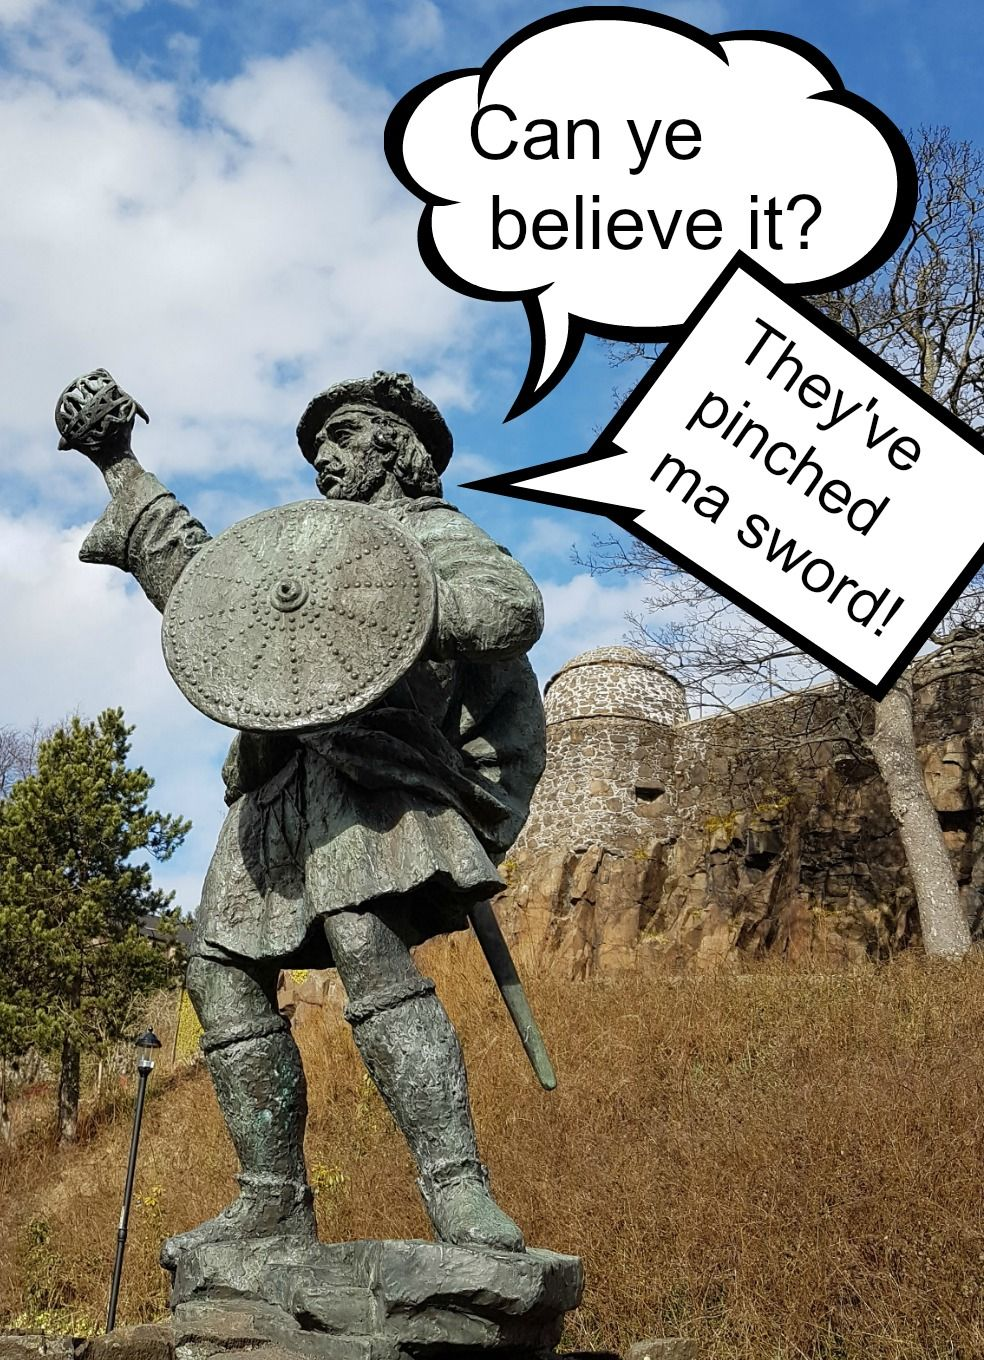 There is a statue of Rob Roy below the old town wall of Stirling (background in the picture). It recalls his prowess as a swordsman and the sculptor (Beno Schutz) gave him unnaturally long arms, though this is not evident here.  What is clear though is poor Rob has recently been rendered defenceless, perhaps by the bad boys of Stirling (who knows?). Somebody has nicked his sword. And right at the start of the tourist season as well. (Spring 2018.)  What's left has a faint but unsettling resemblance to a hand grenade.